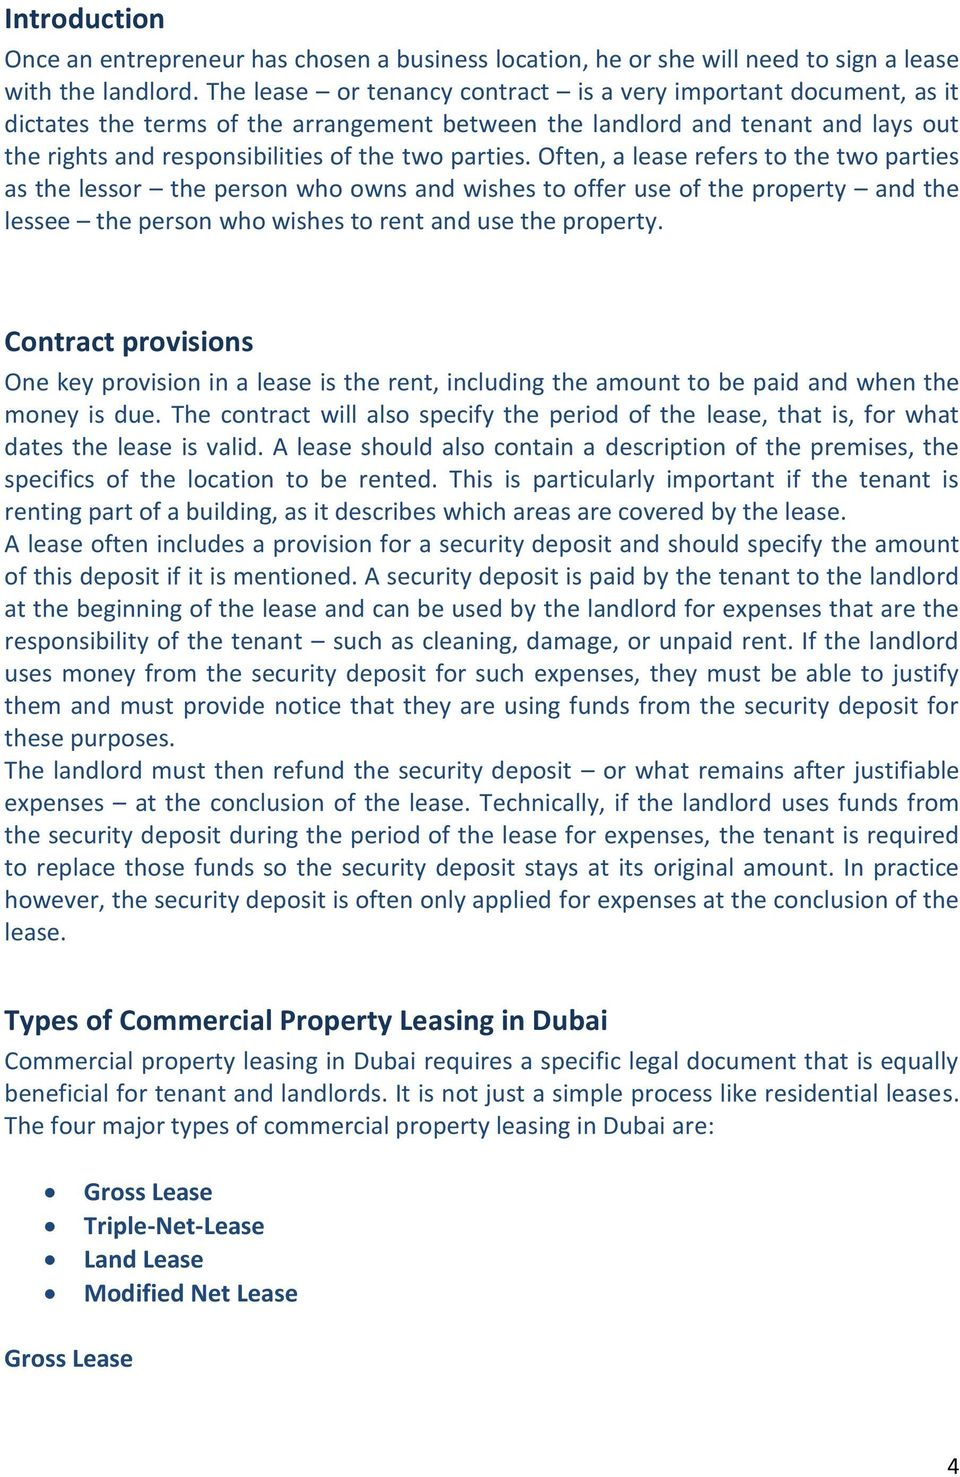 Often, a lease refers to the two parties as the lessor the person who owns and wishes to offer use of the property and the lessee the person who wishes to rent and use the property.